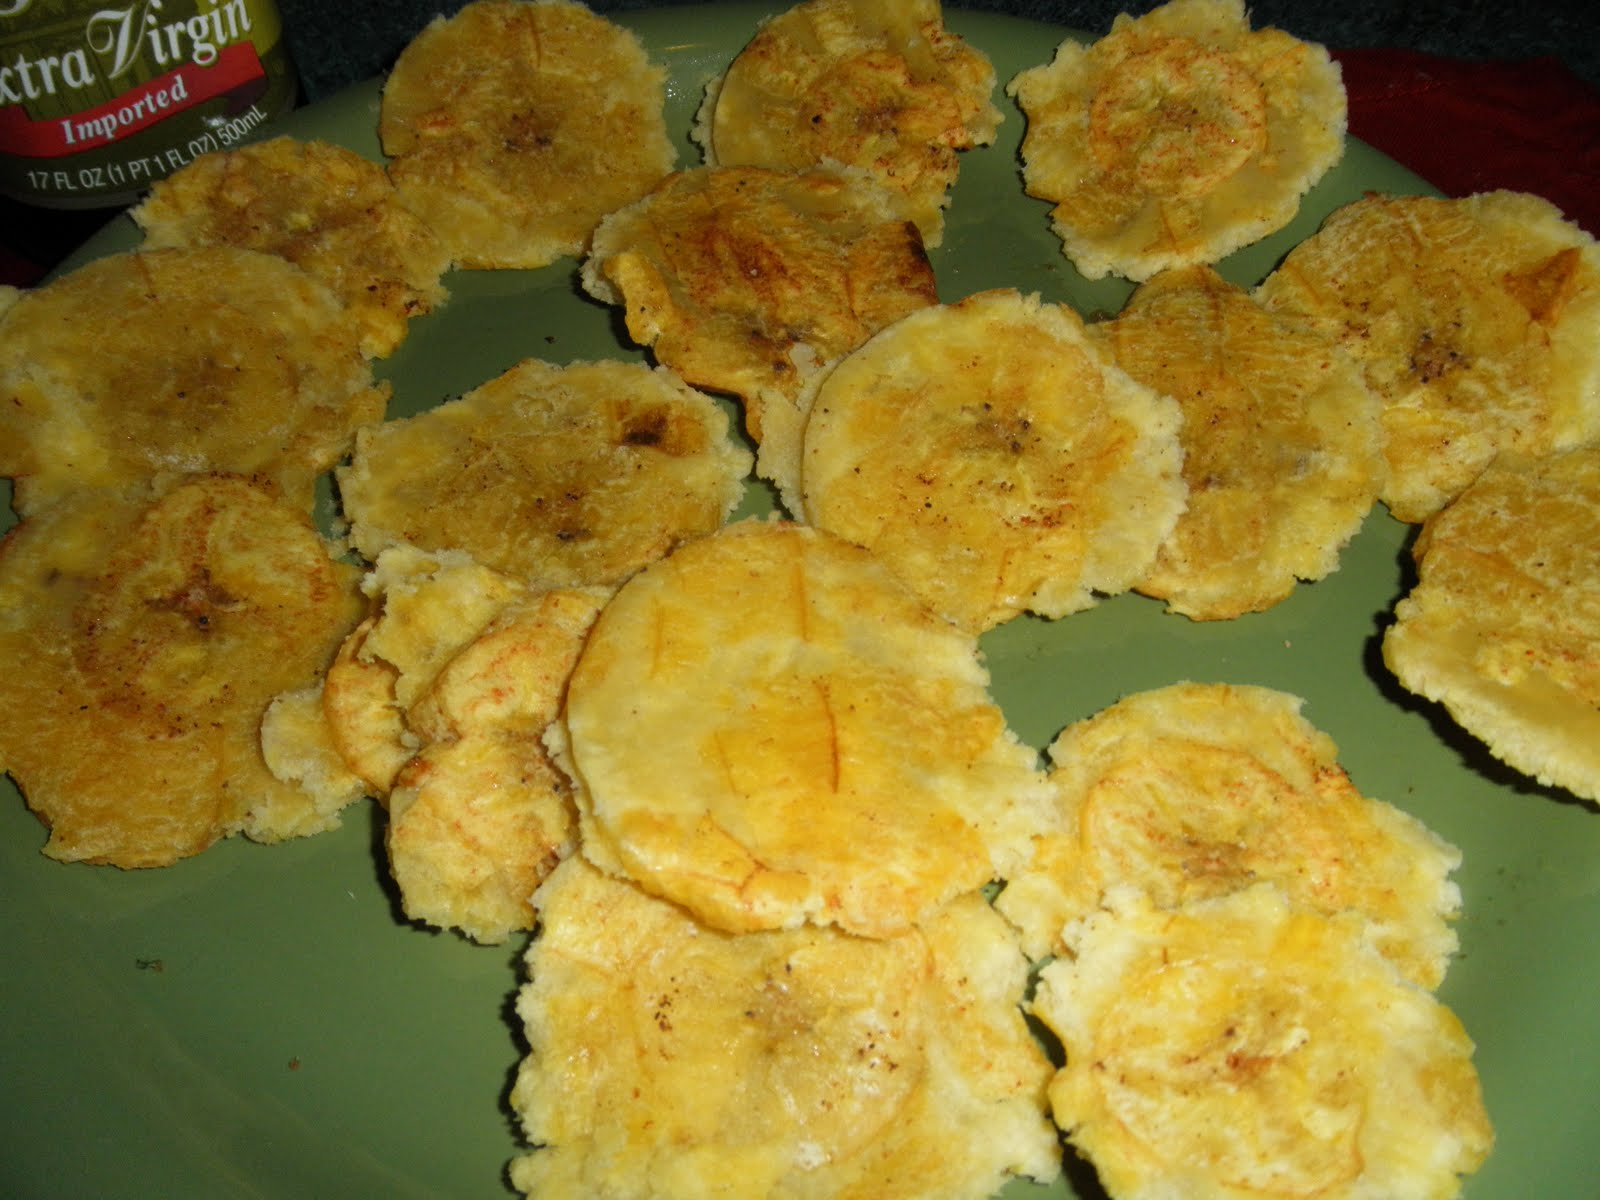 Haitian Creole: What is your favourite haitian food ...